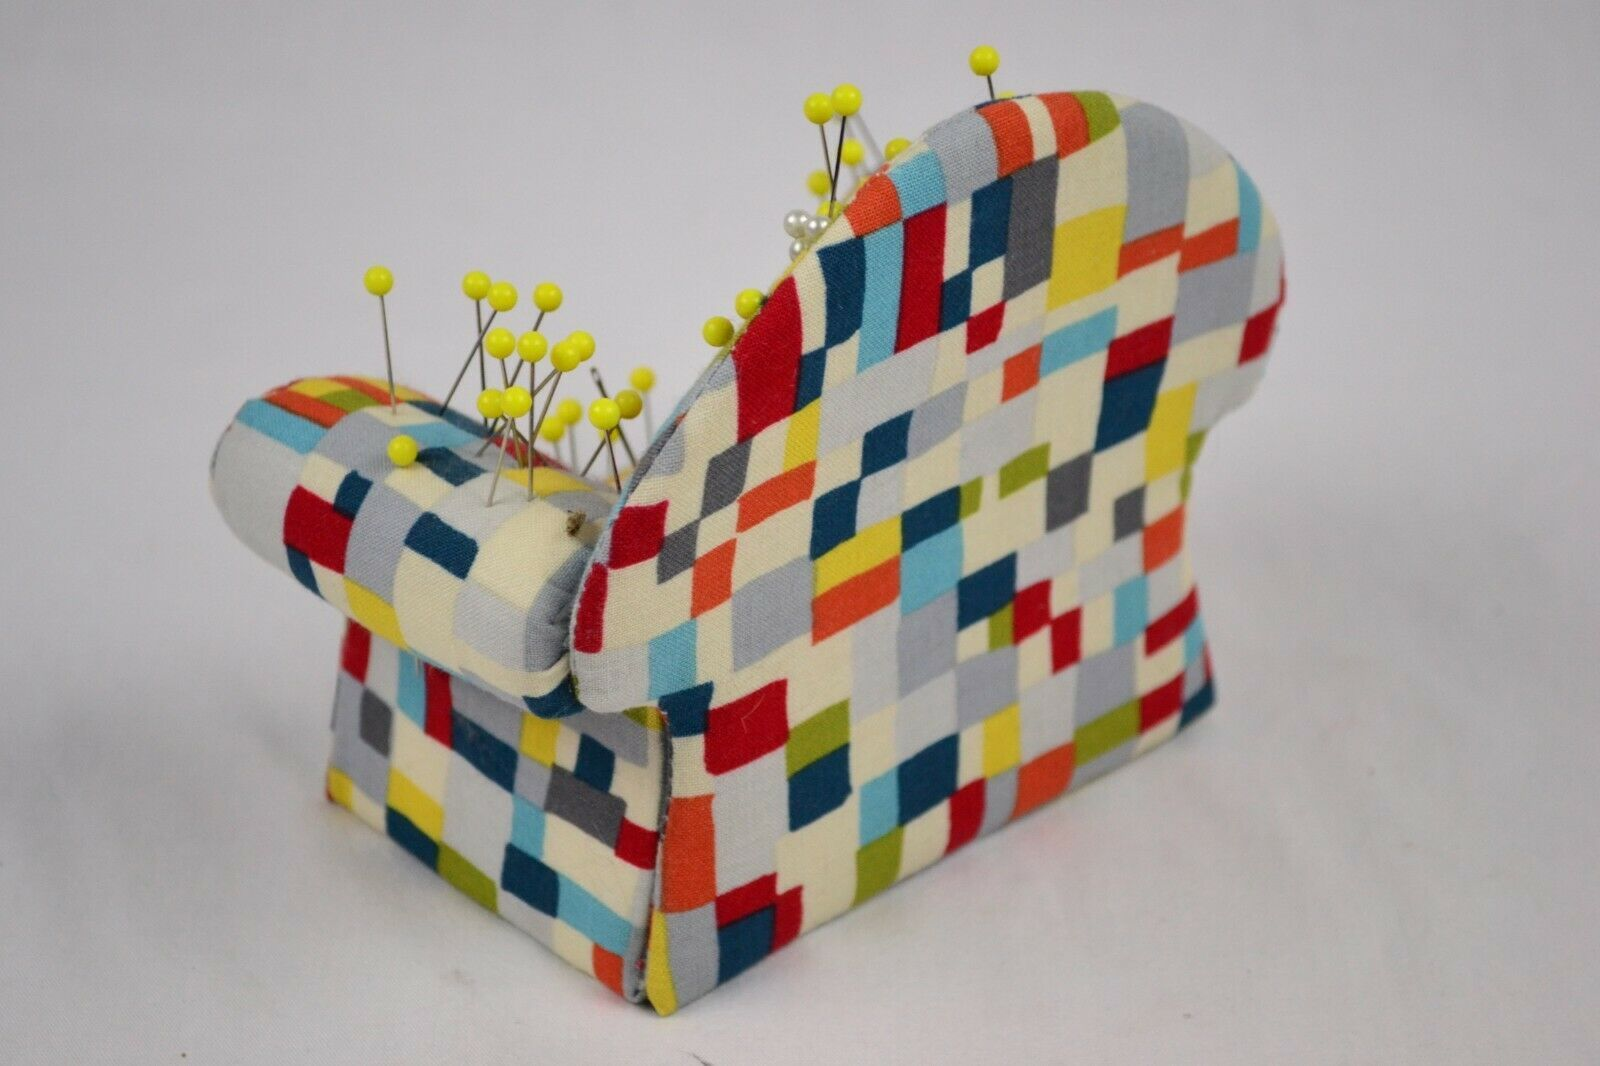 Couch Pin Cushion With Pins, Cute image 3